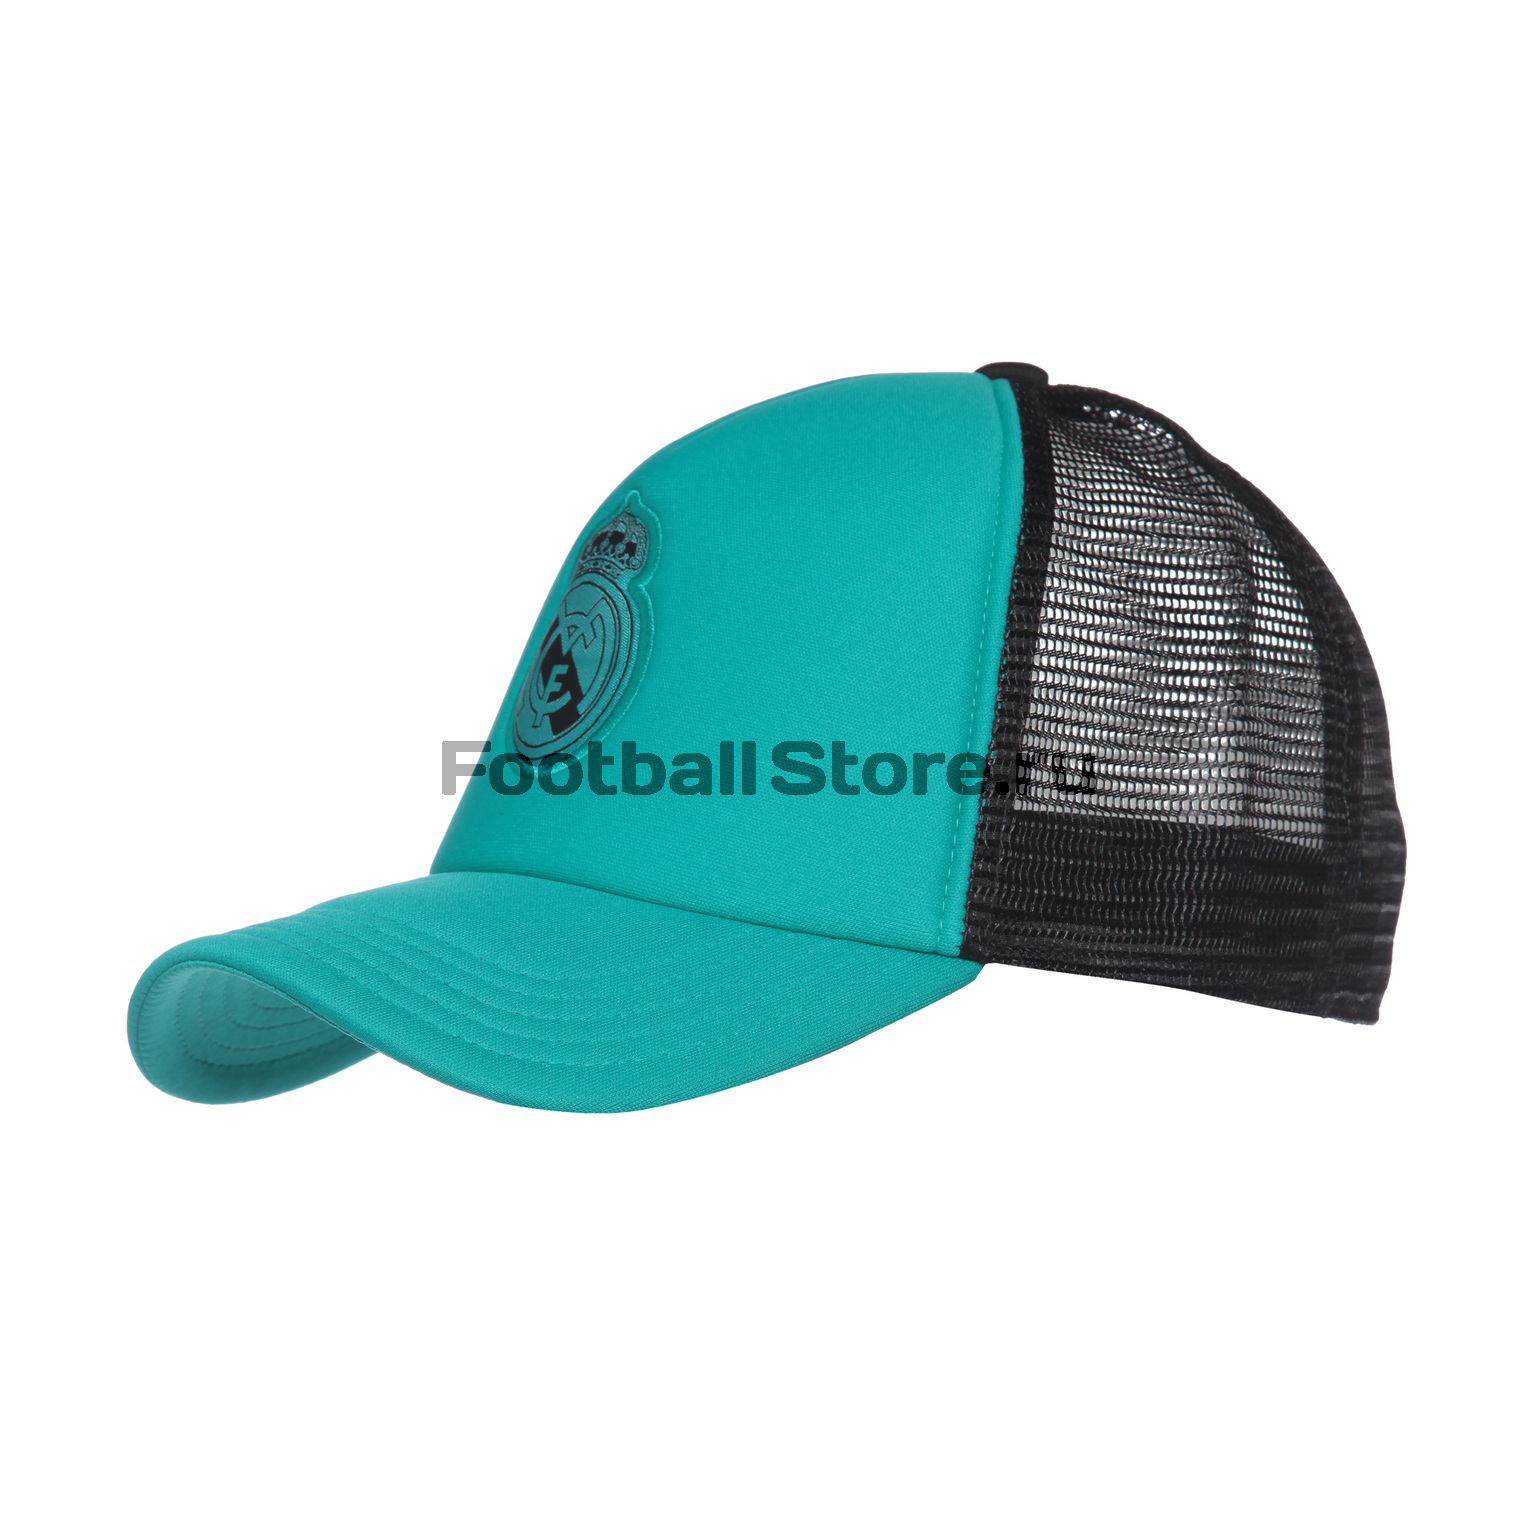 Real Madrid Adidas Бейсболка Adidas Real Madrid BR7160 real madrid adidas свитер adidas real madrid euhybrid top bq7851